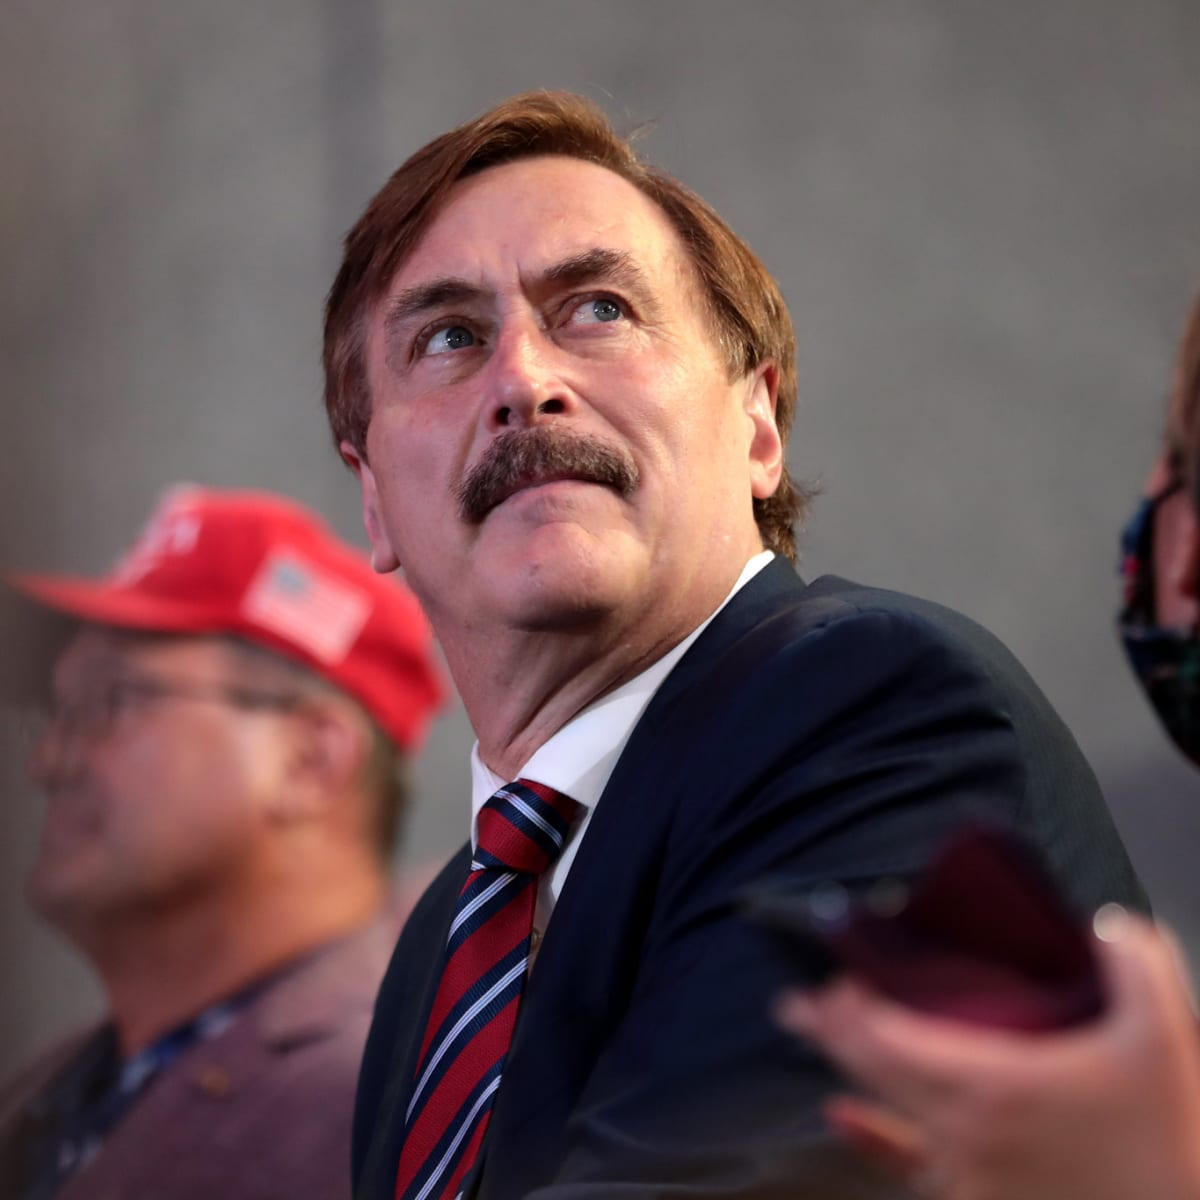 Mypillow Guy S White House Notes Caught On Camera Reveal Plan To Keep Trump In Office Bring Me The News